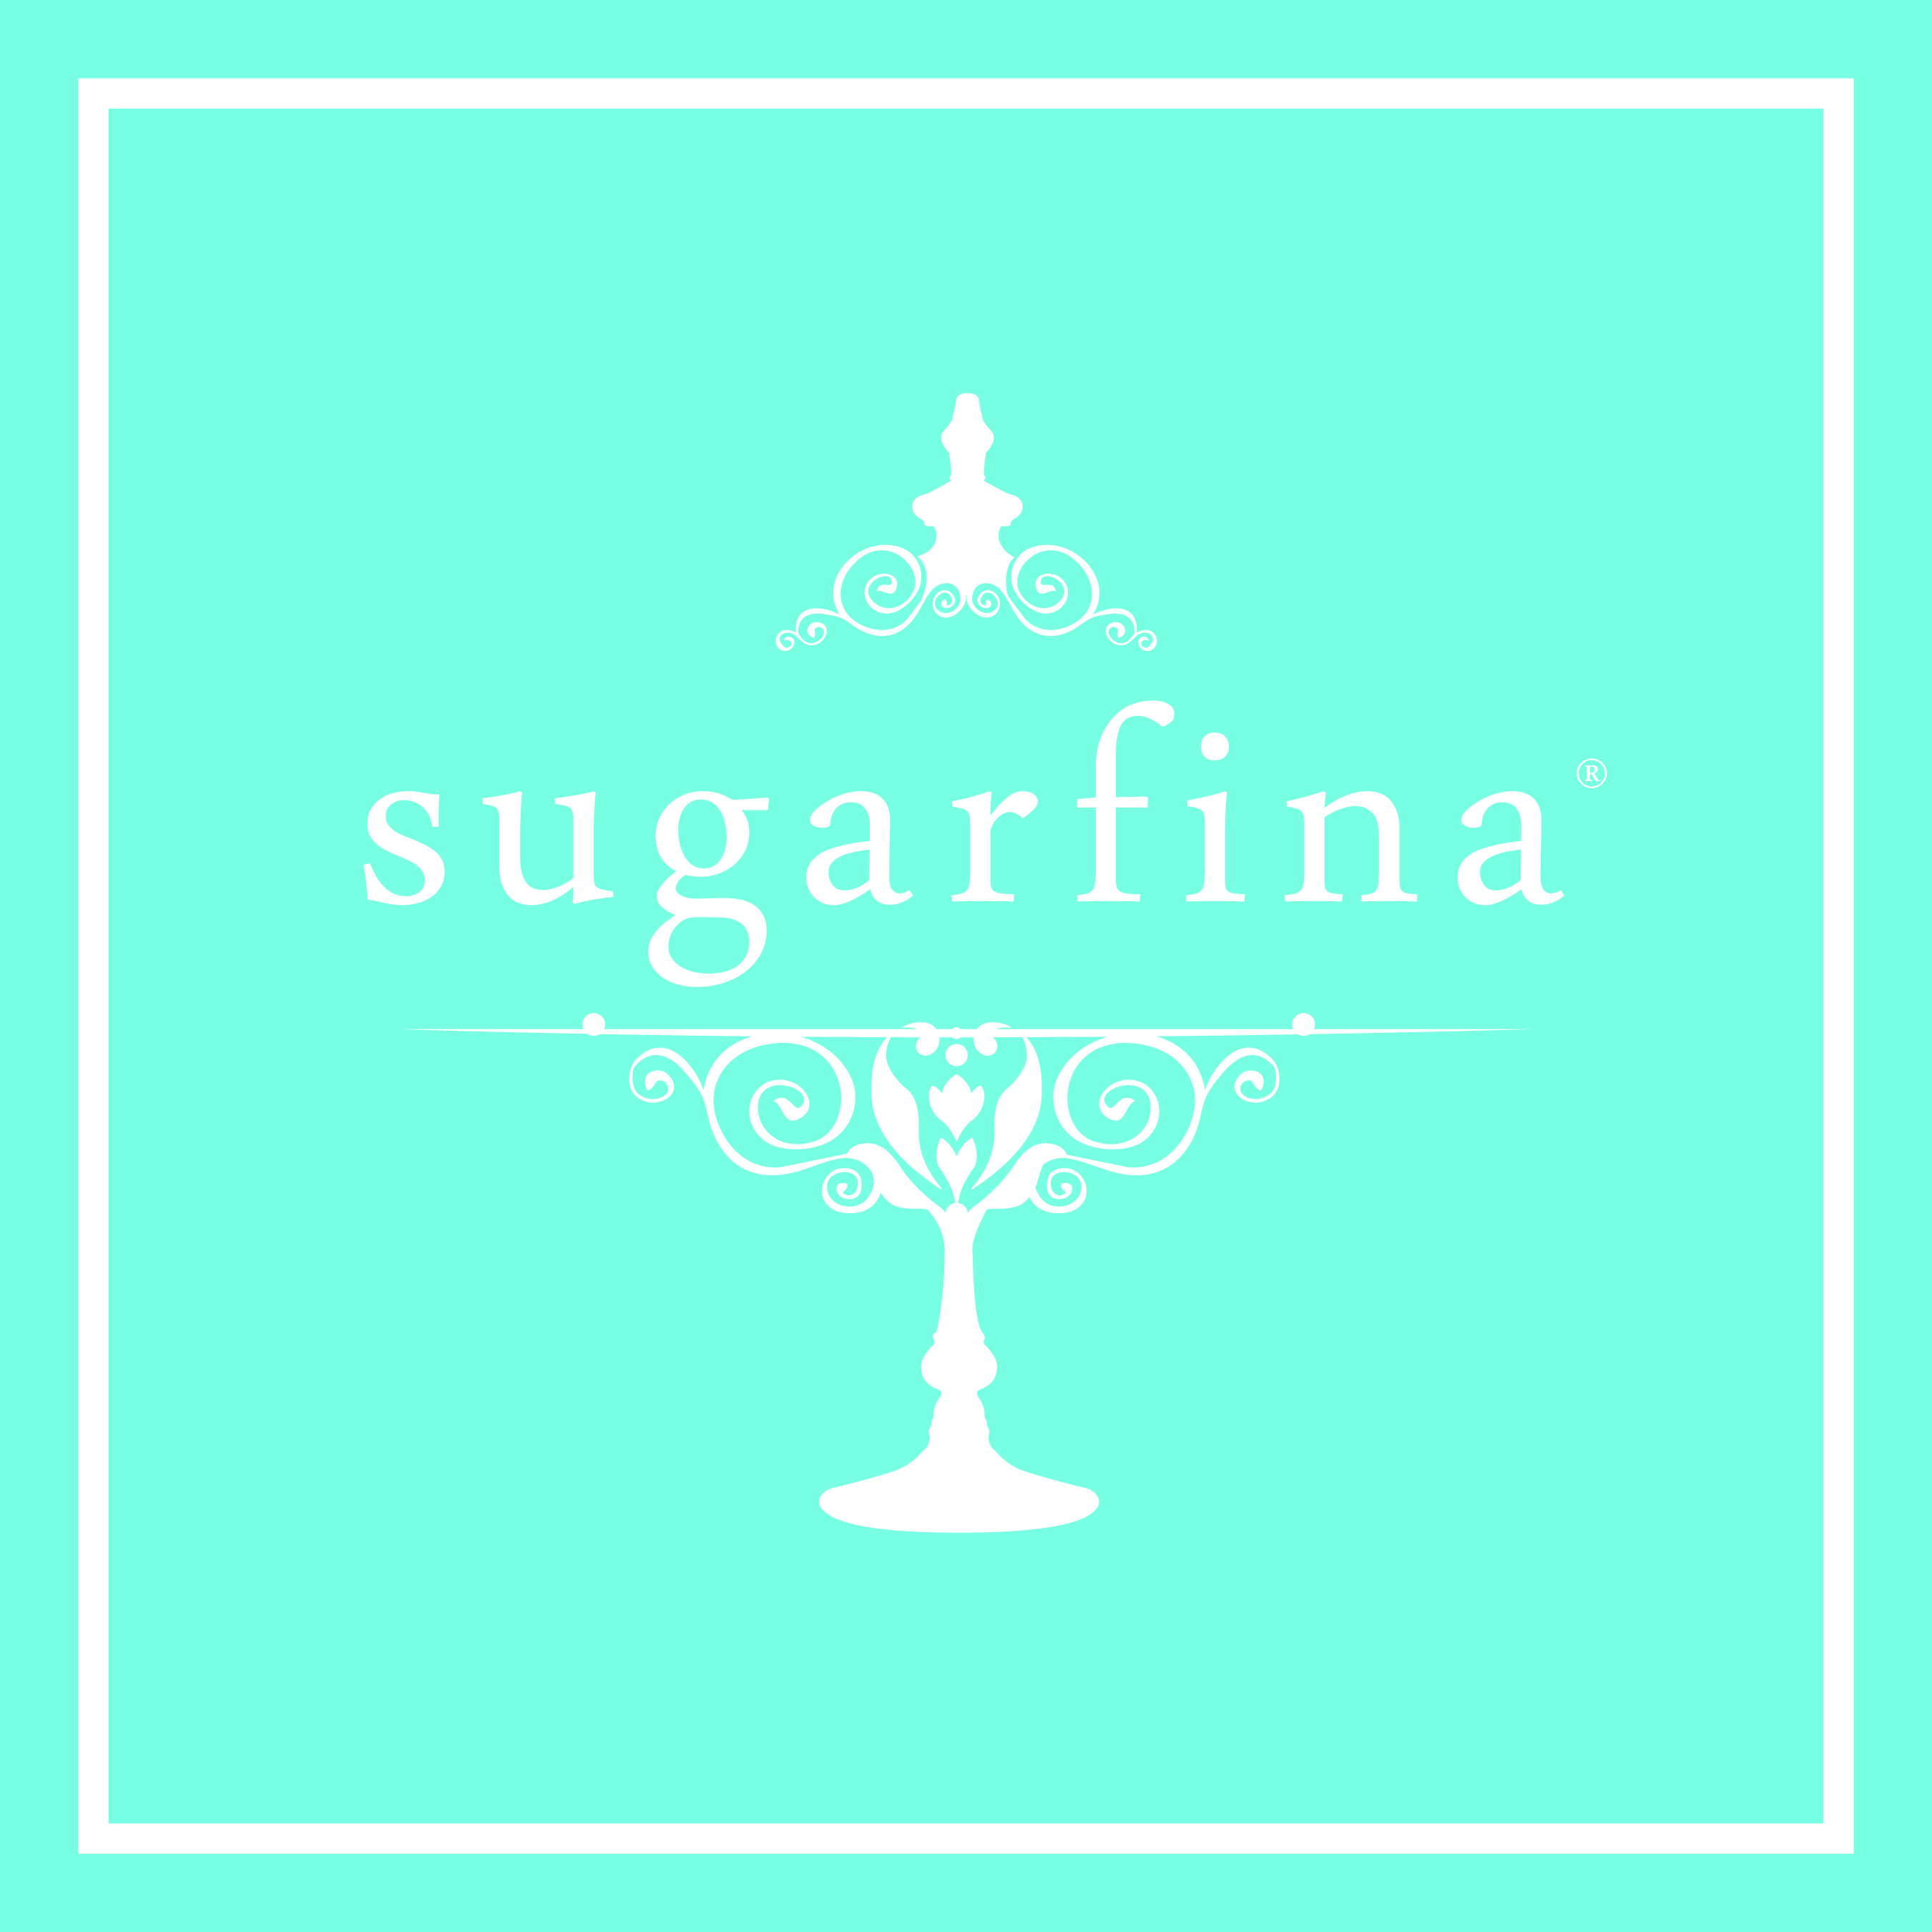 Sugarfina_square logo